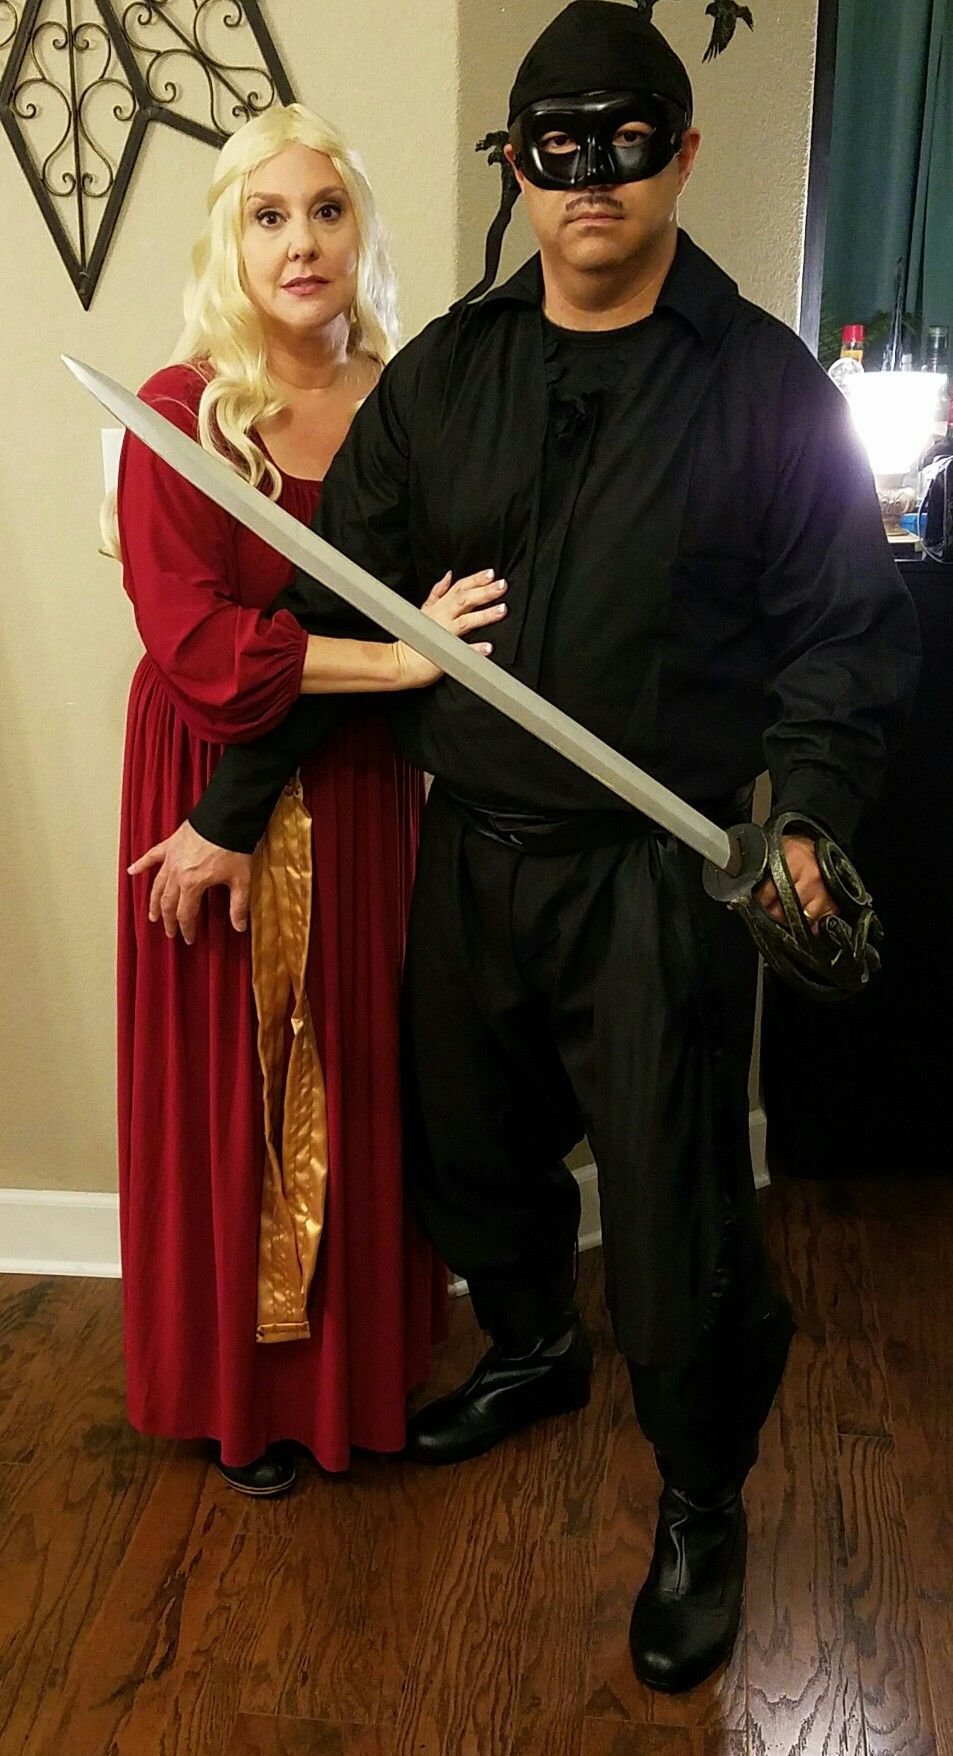 halloween couples costume marc donna the princess bride wesley buttercup jpg 953x1756 princess bride halloween